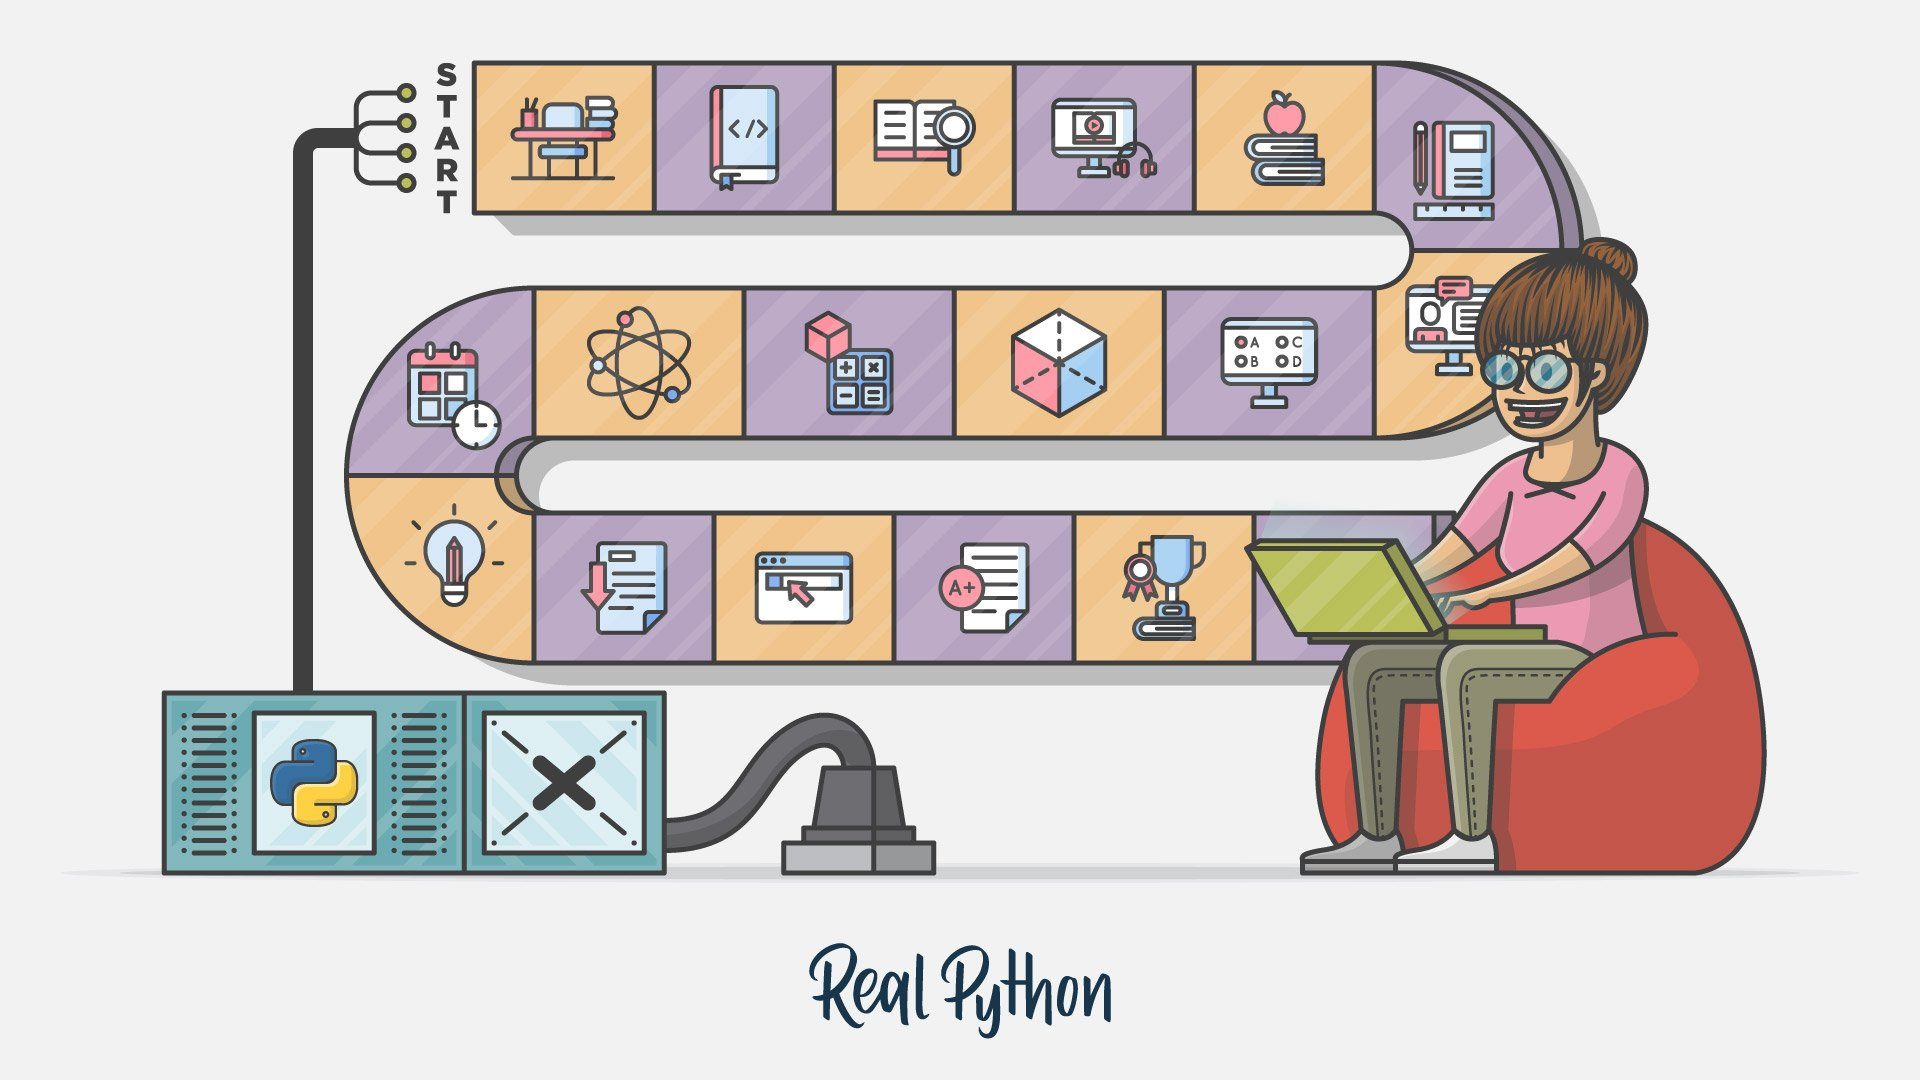 Real Python Learning Paths